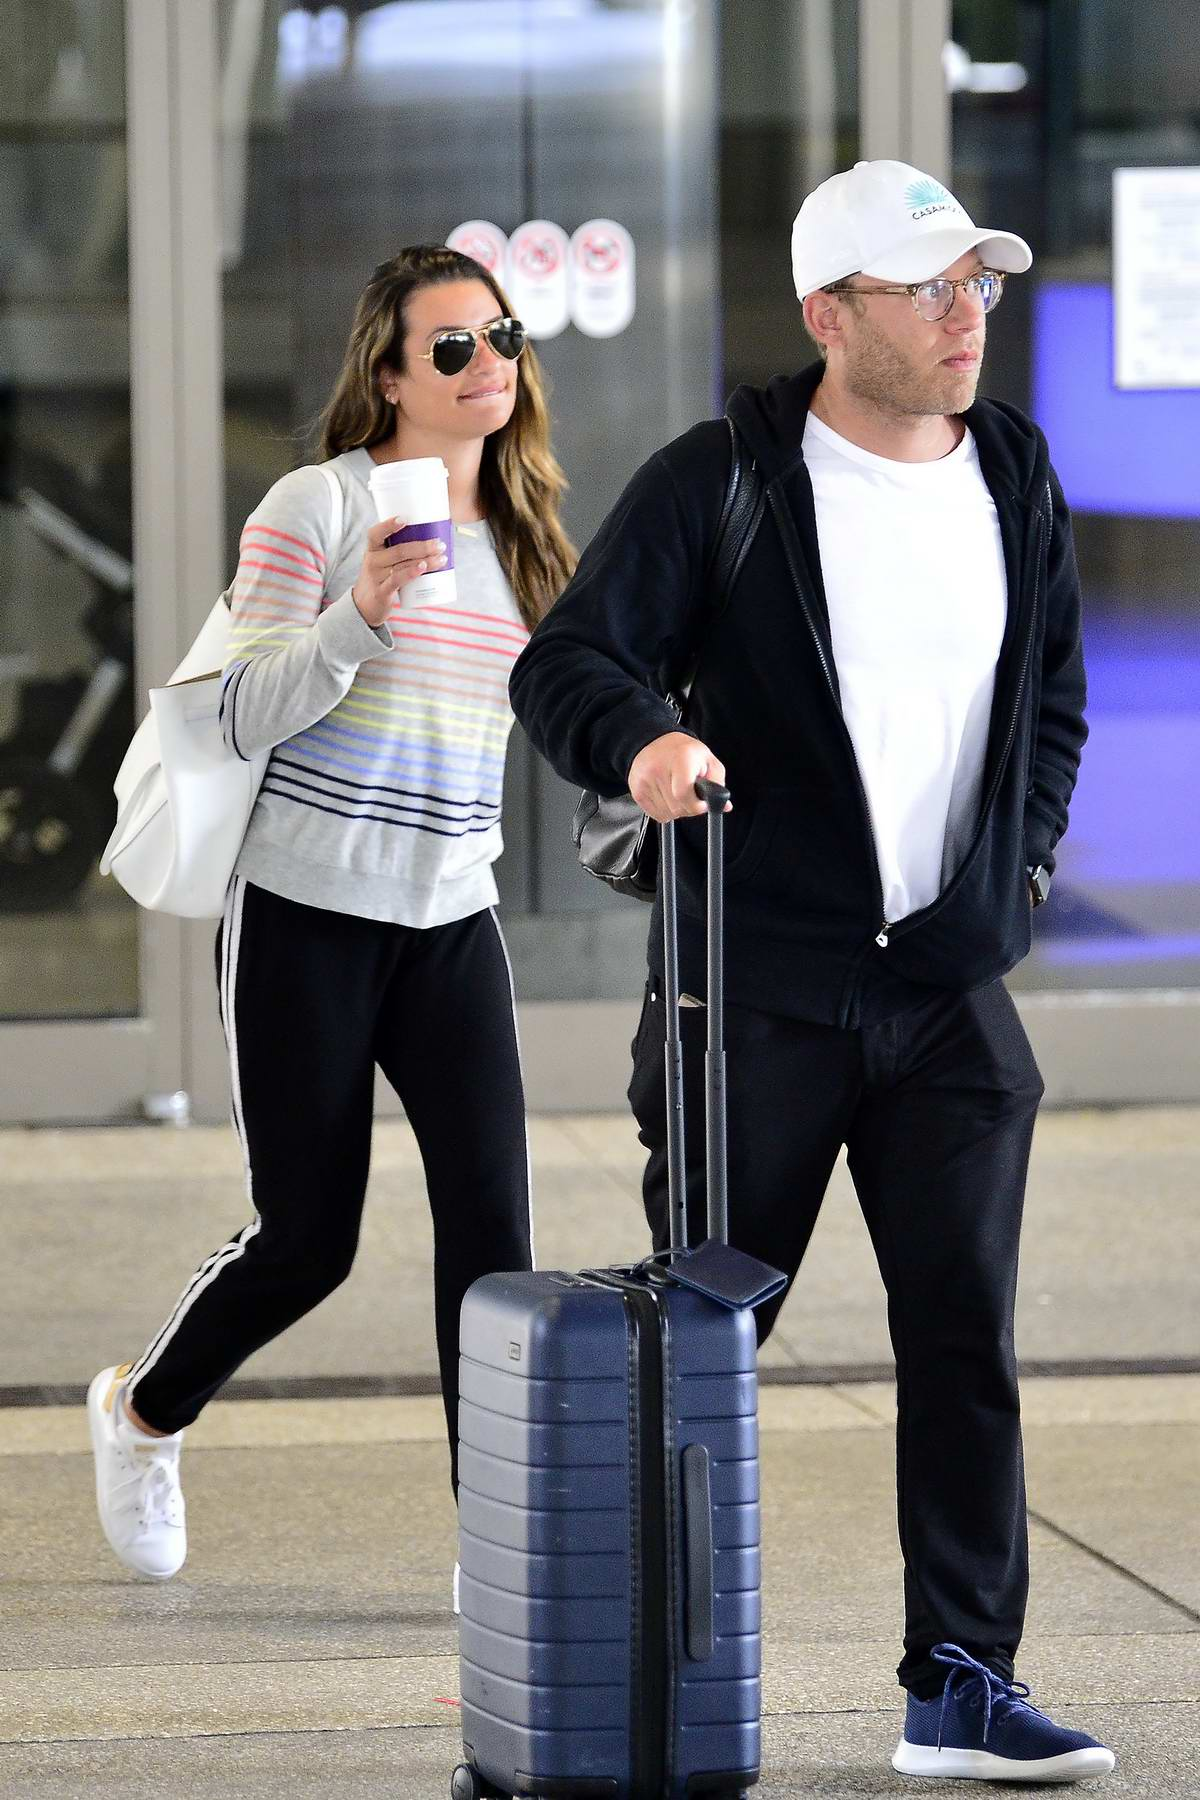 Lea Michele and Zandy Reich are spotted for the first time since their wedding as they arrive at LAX Airport in Los Angeles